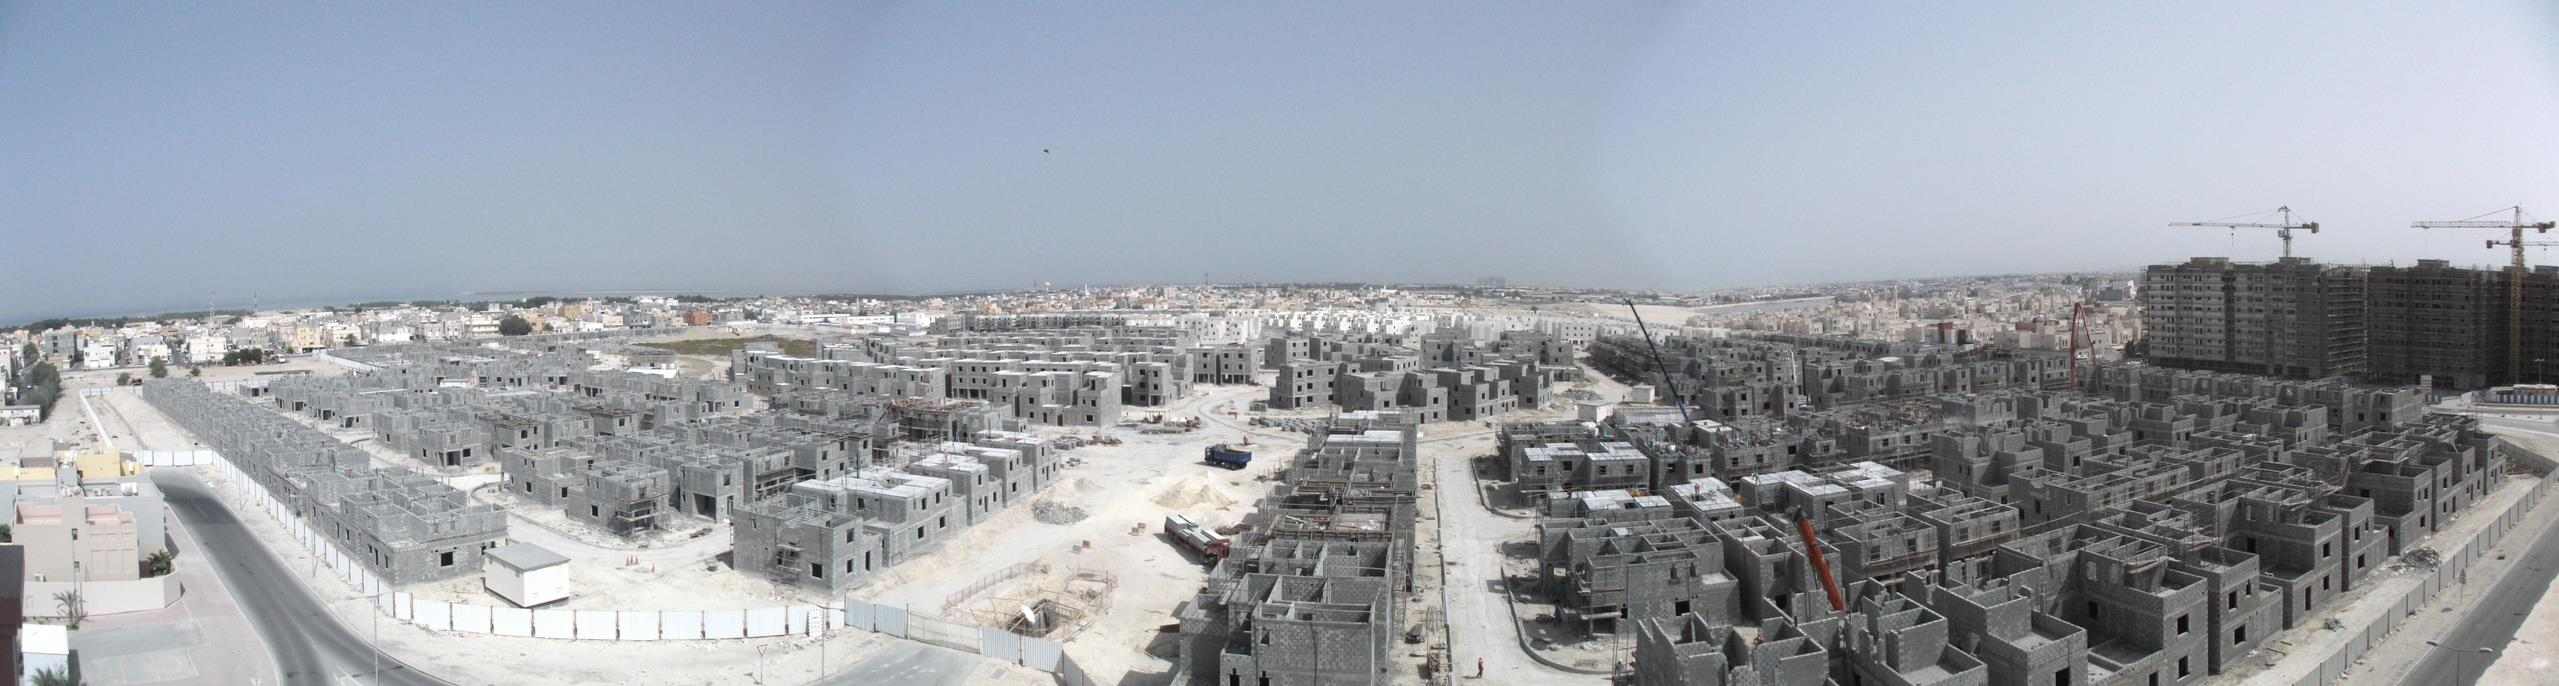 Bahrain affordable housing PPP project - Mott MacDonald